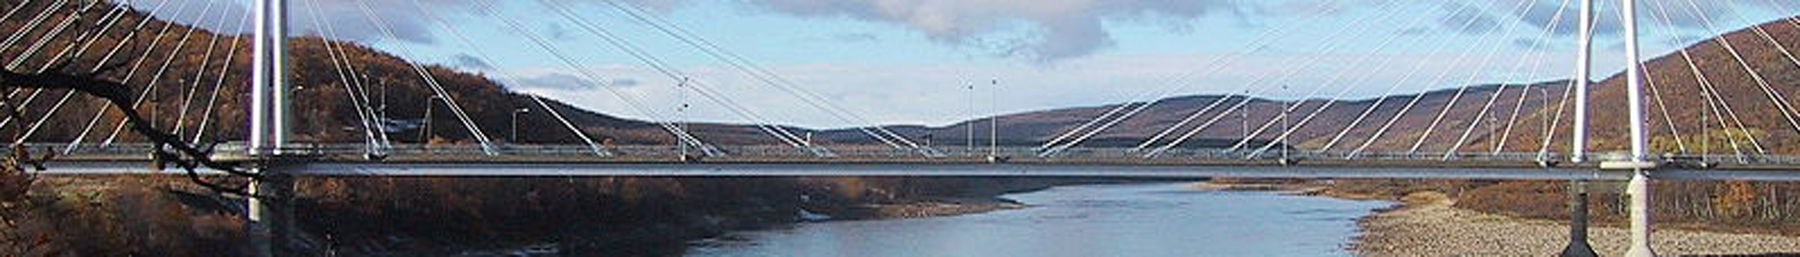 Sami bridge at the Finnish–Norwegian border